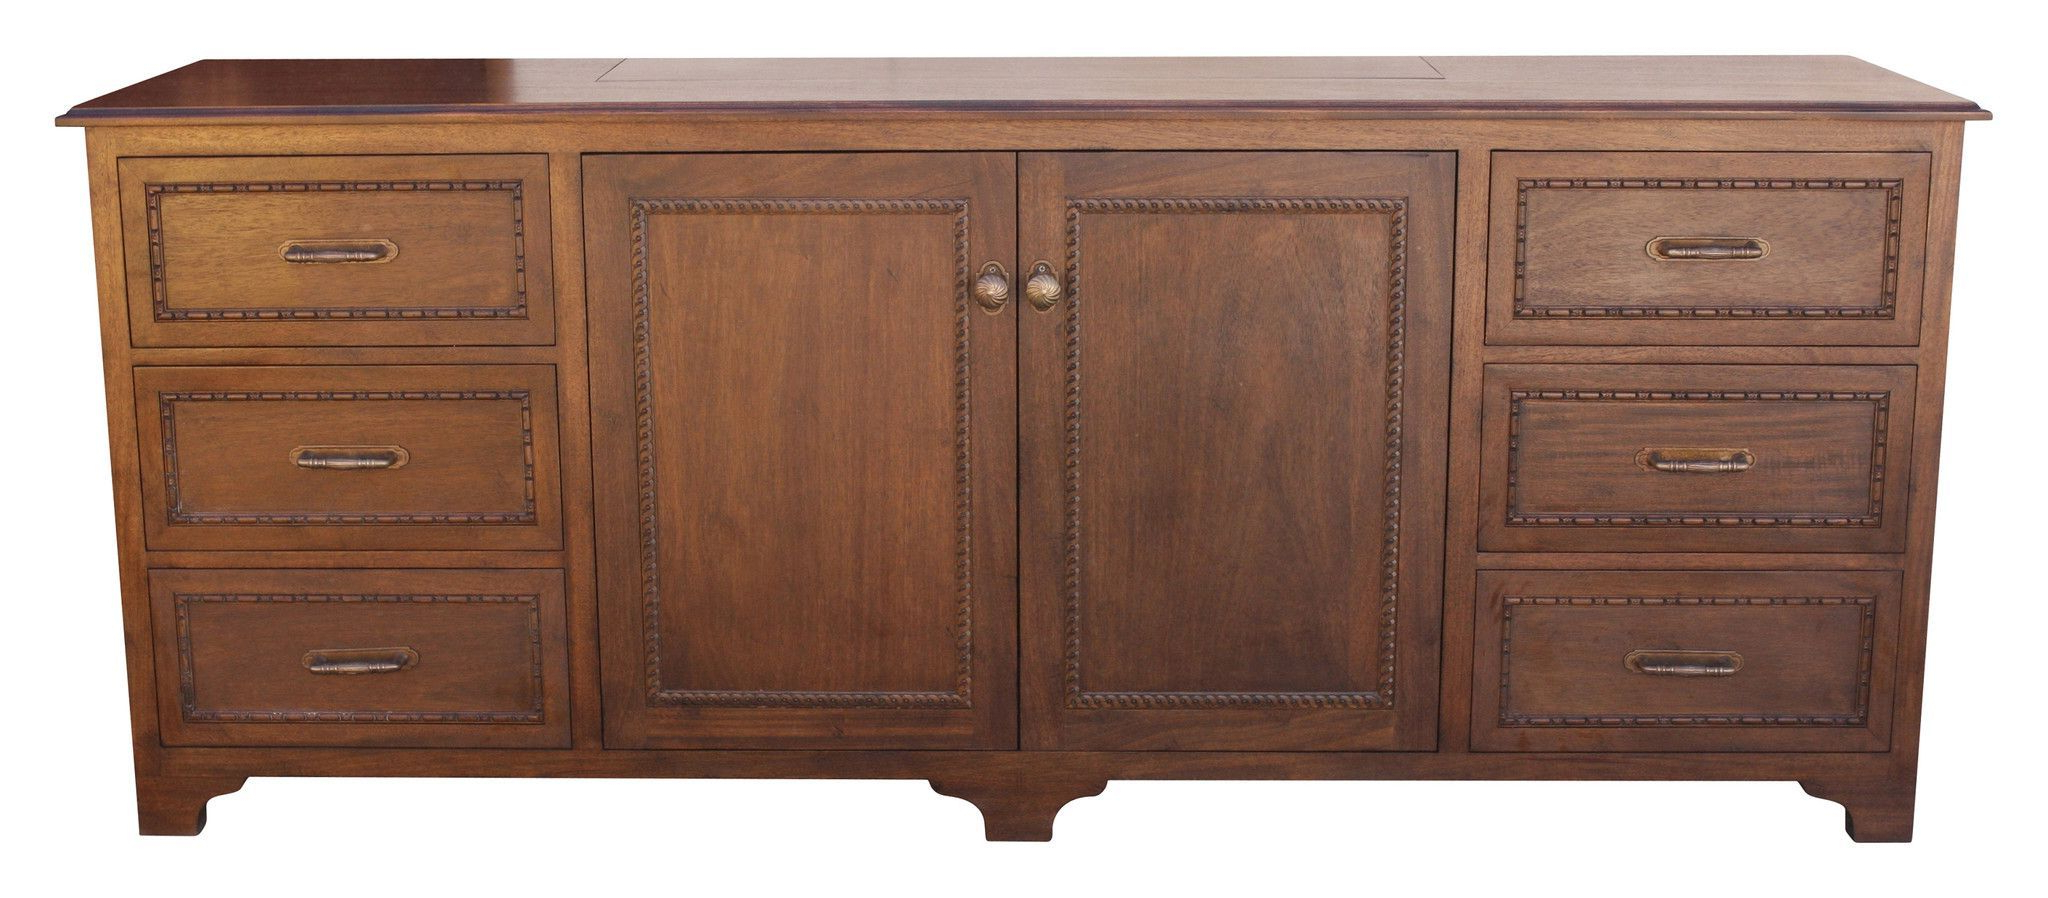 One Kings Lane Beulah 3 Door Cabinet – Pecan In 2019 With Current Chaffins Sideboards (Gallery 6 of 20)